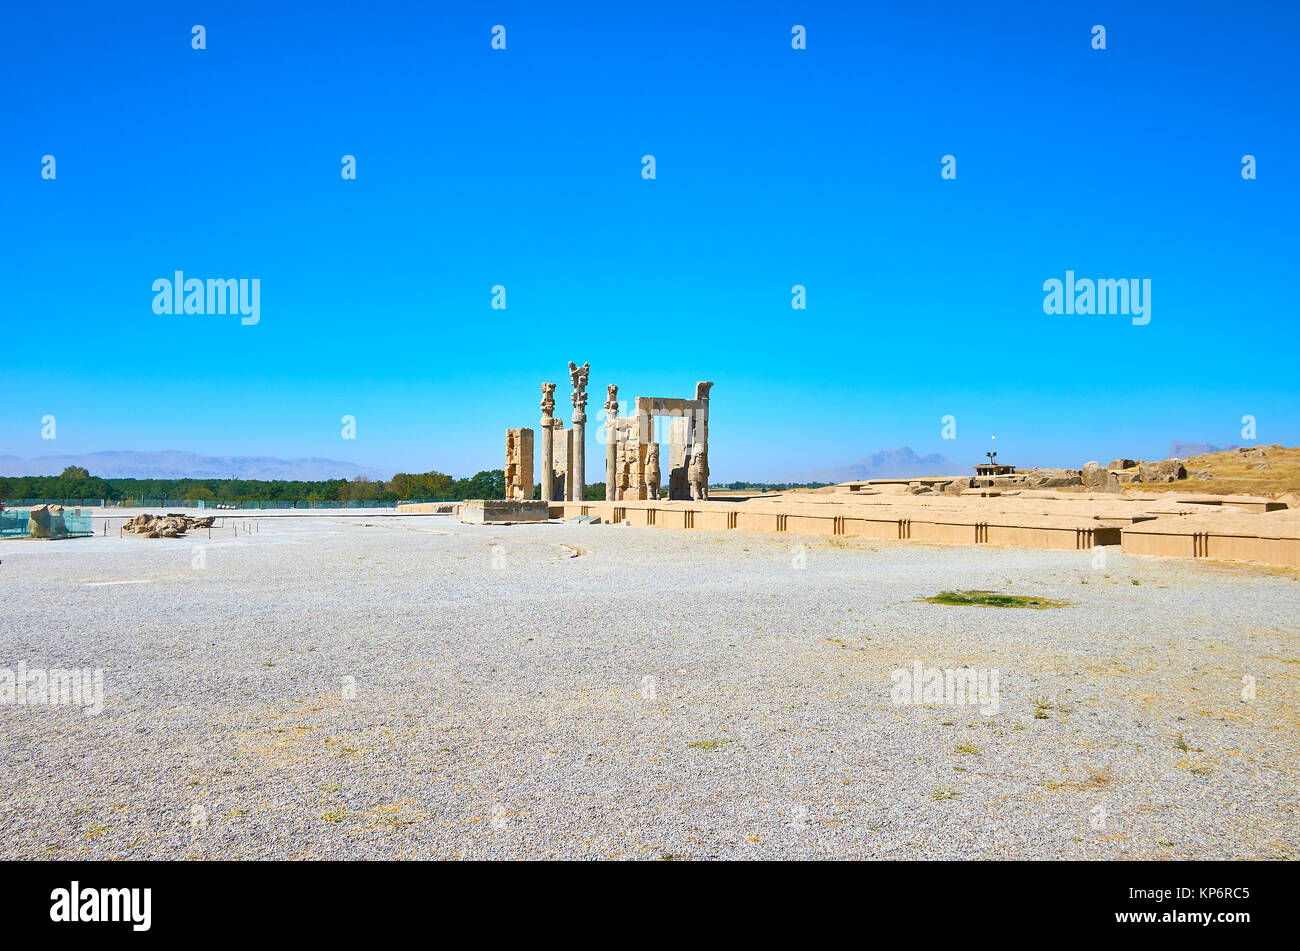 Persepolis archaeological site is located on plateau at the mountain foot, stone ruins of All Nations Gate are perfectly - Stock Image